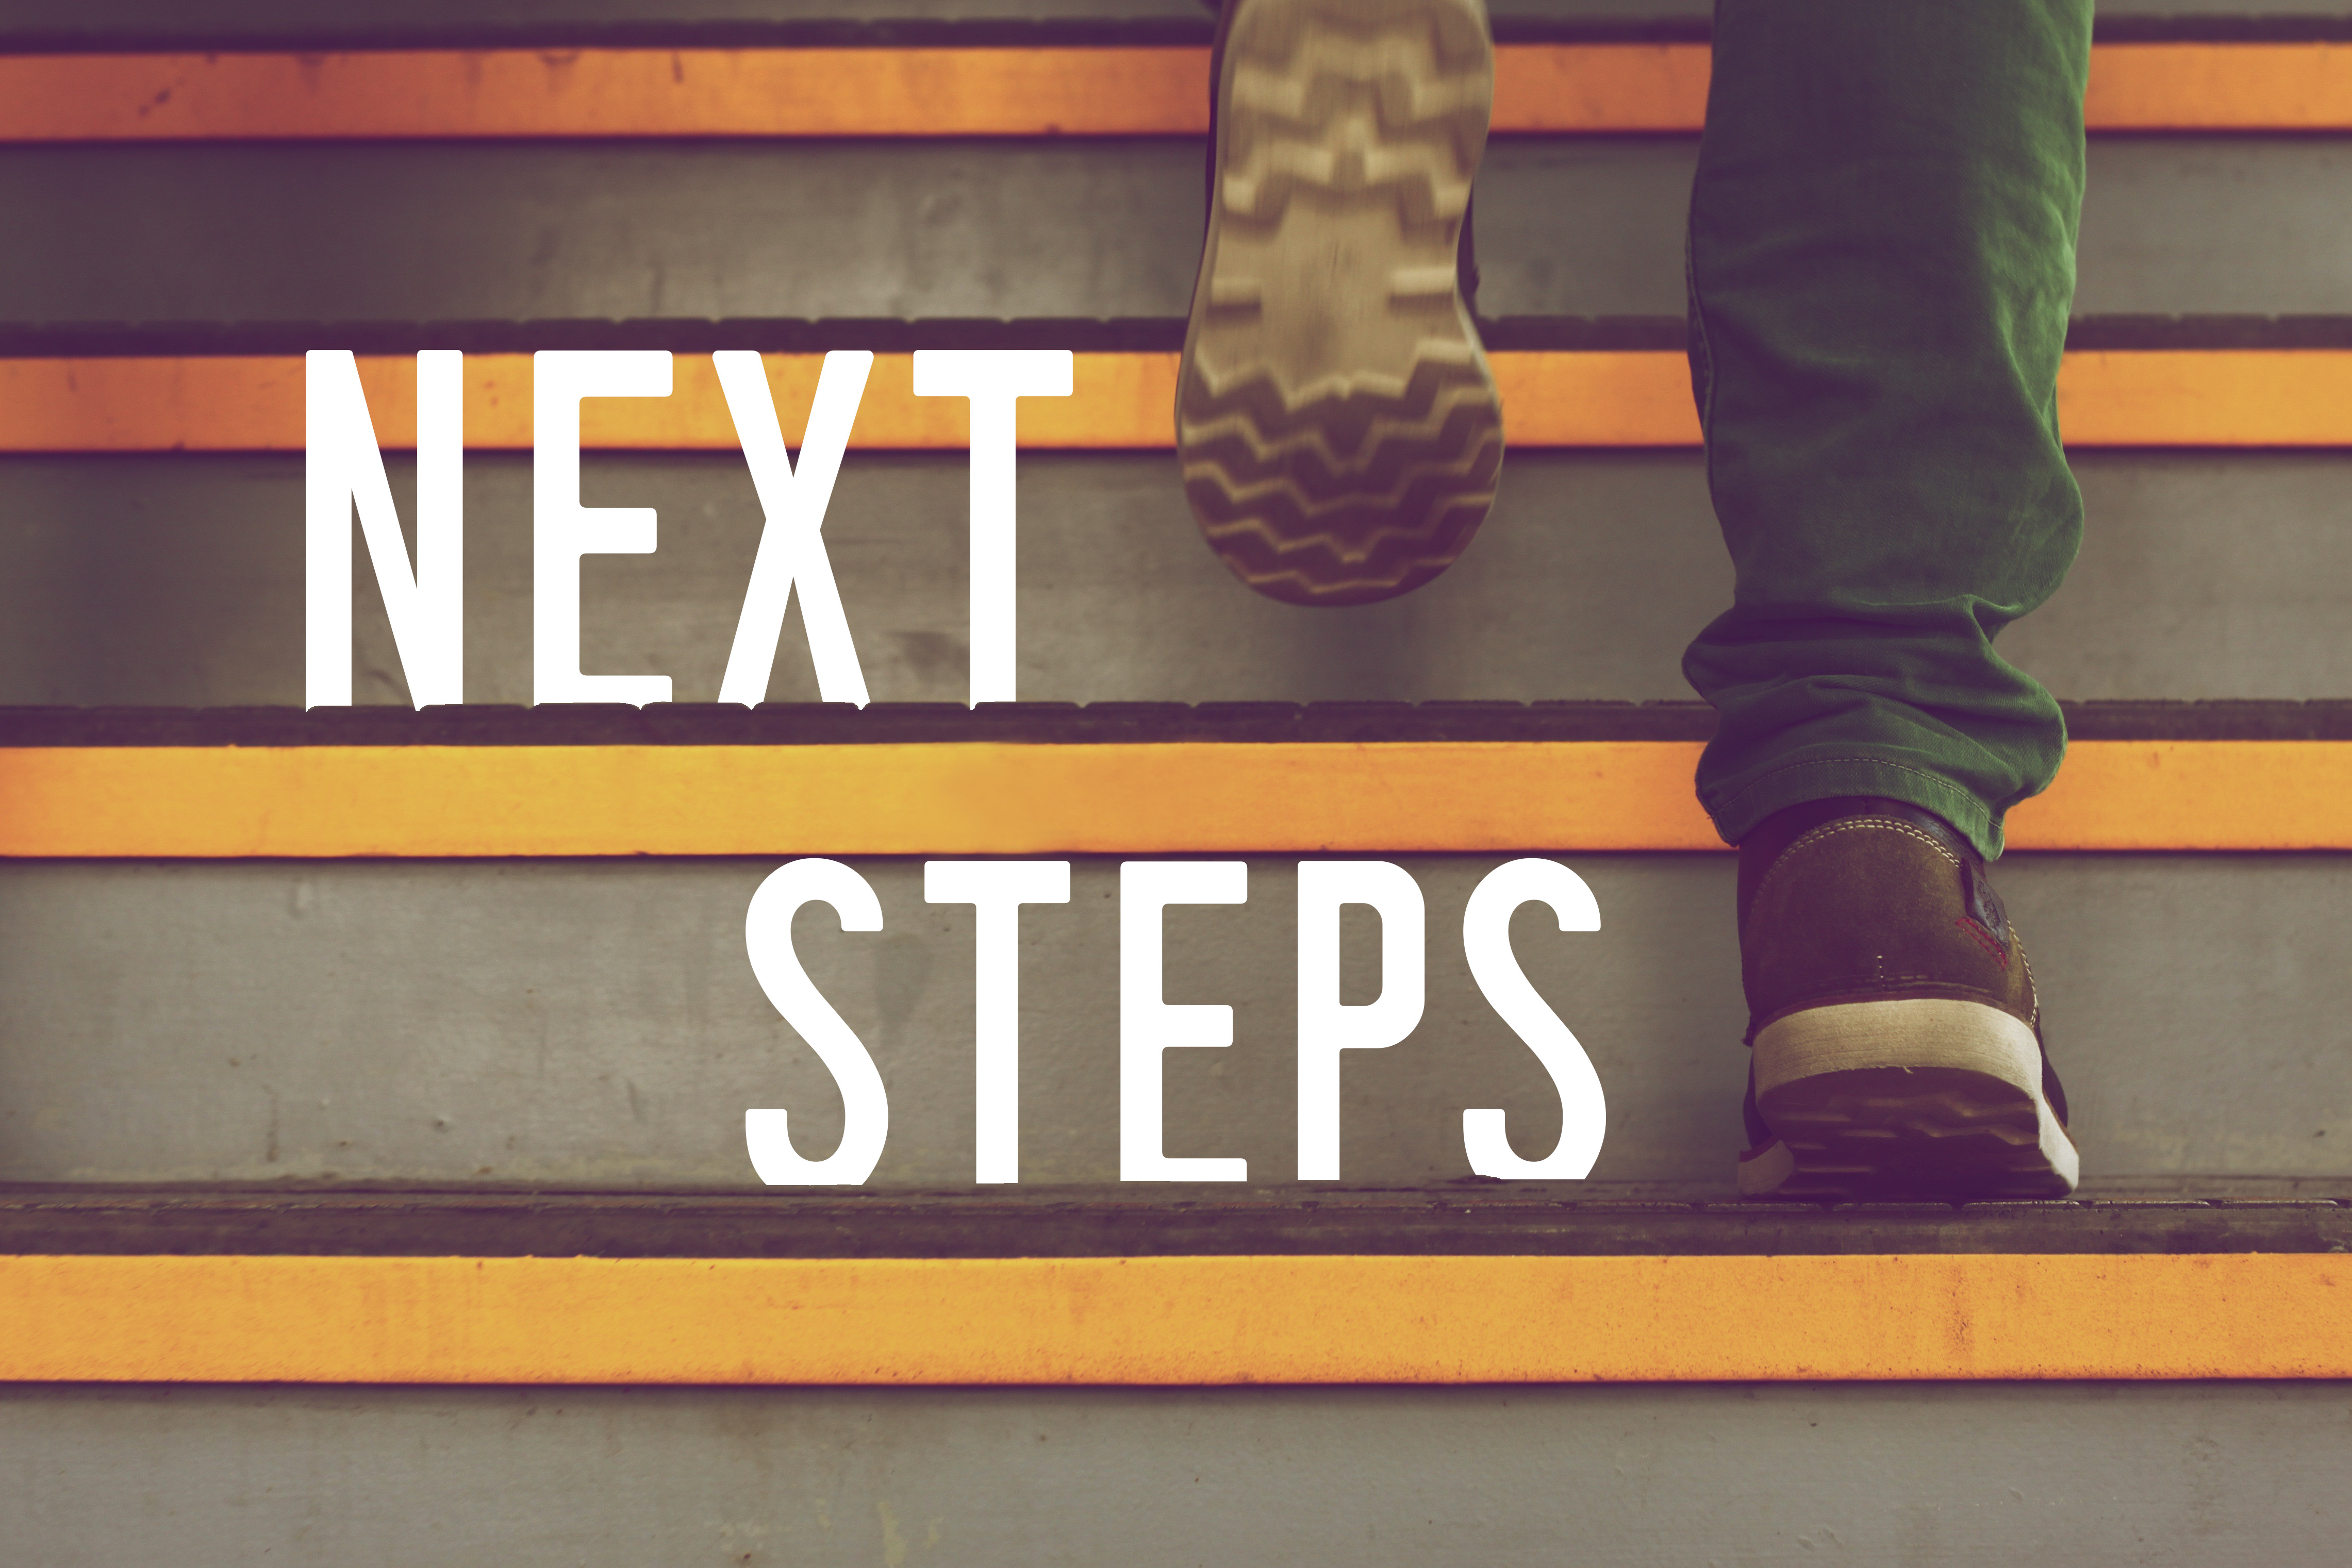 Next steps graphic